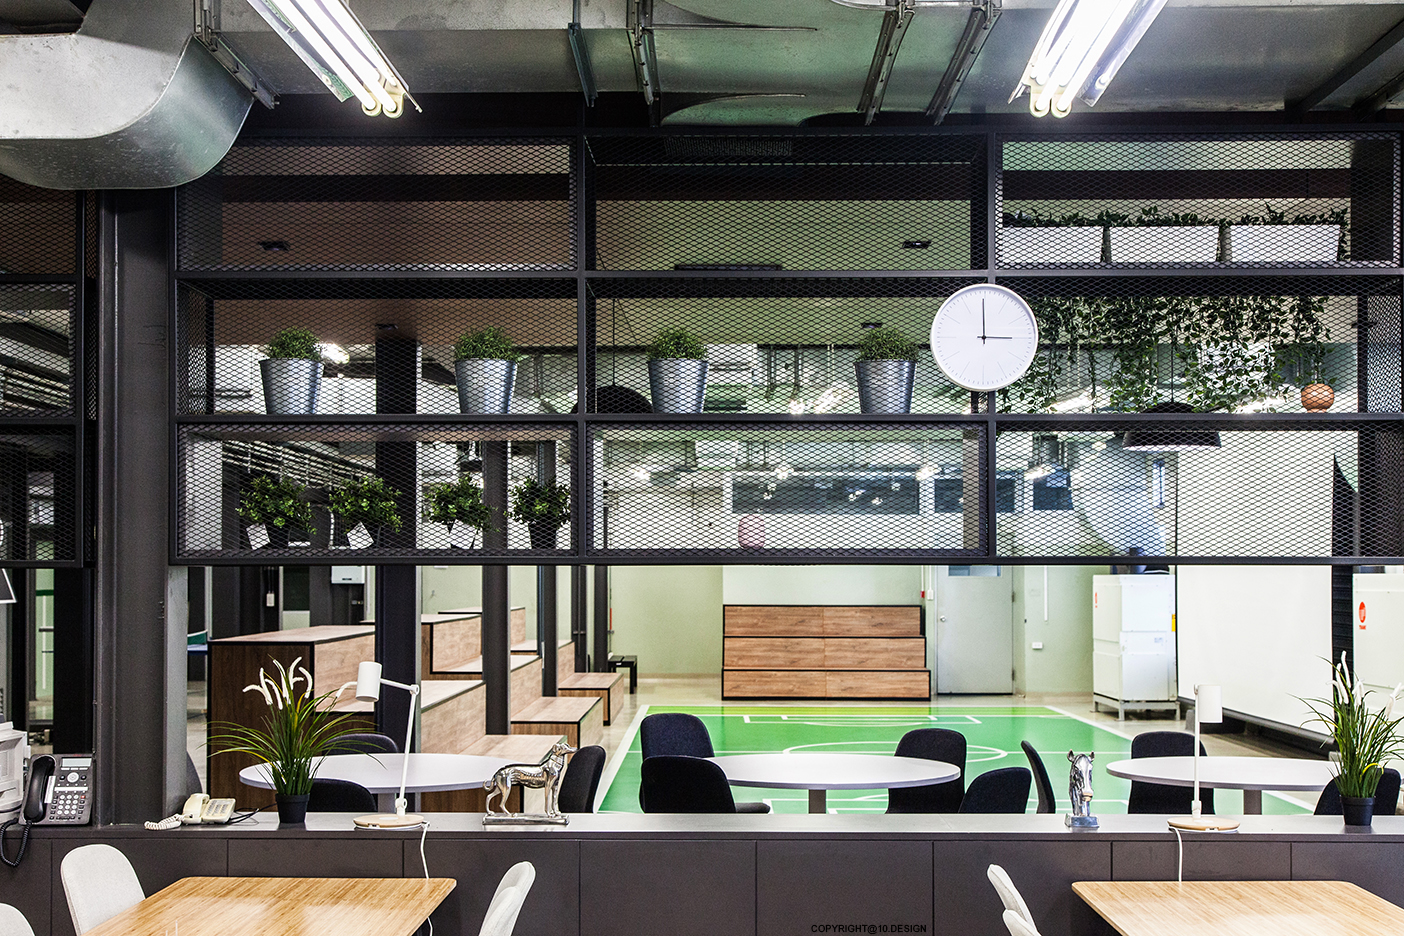 10DESIGN CHANWANICH CO WORKING SPACE CORPORATE OFFICE WORK PLACE INTERIOR DESIGN 09